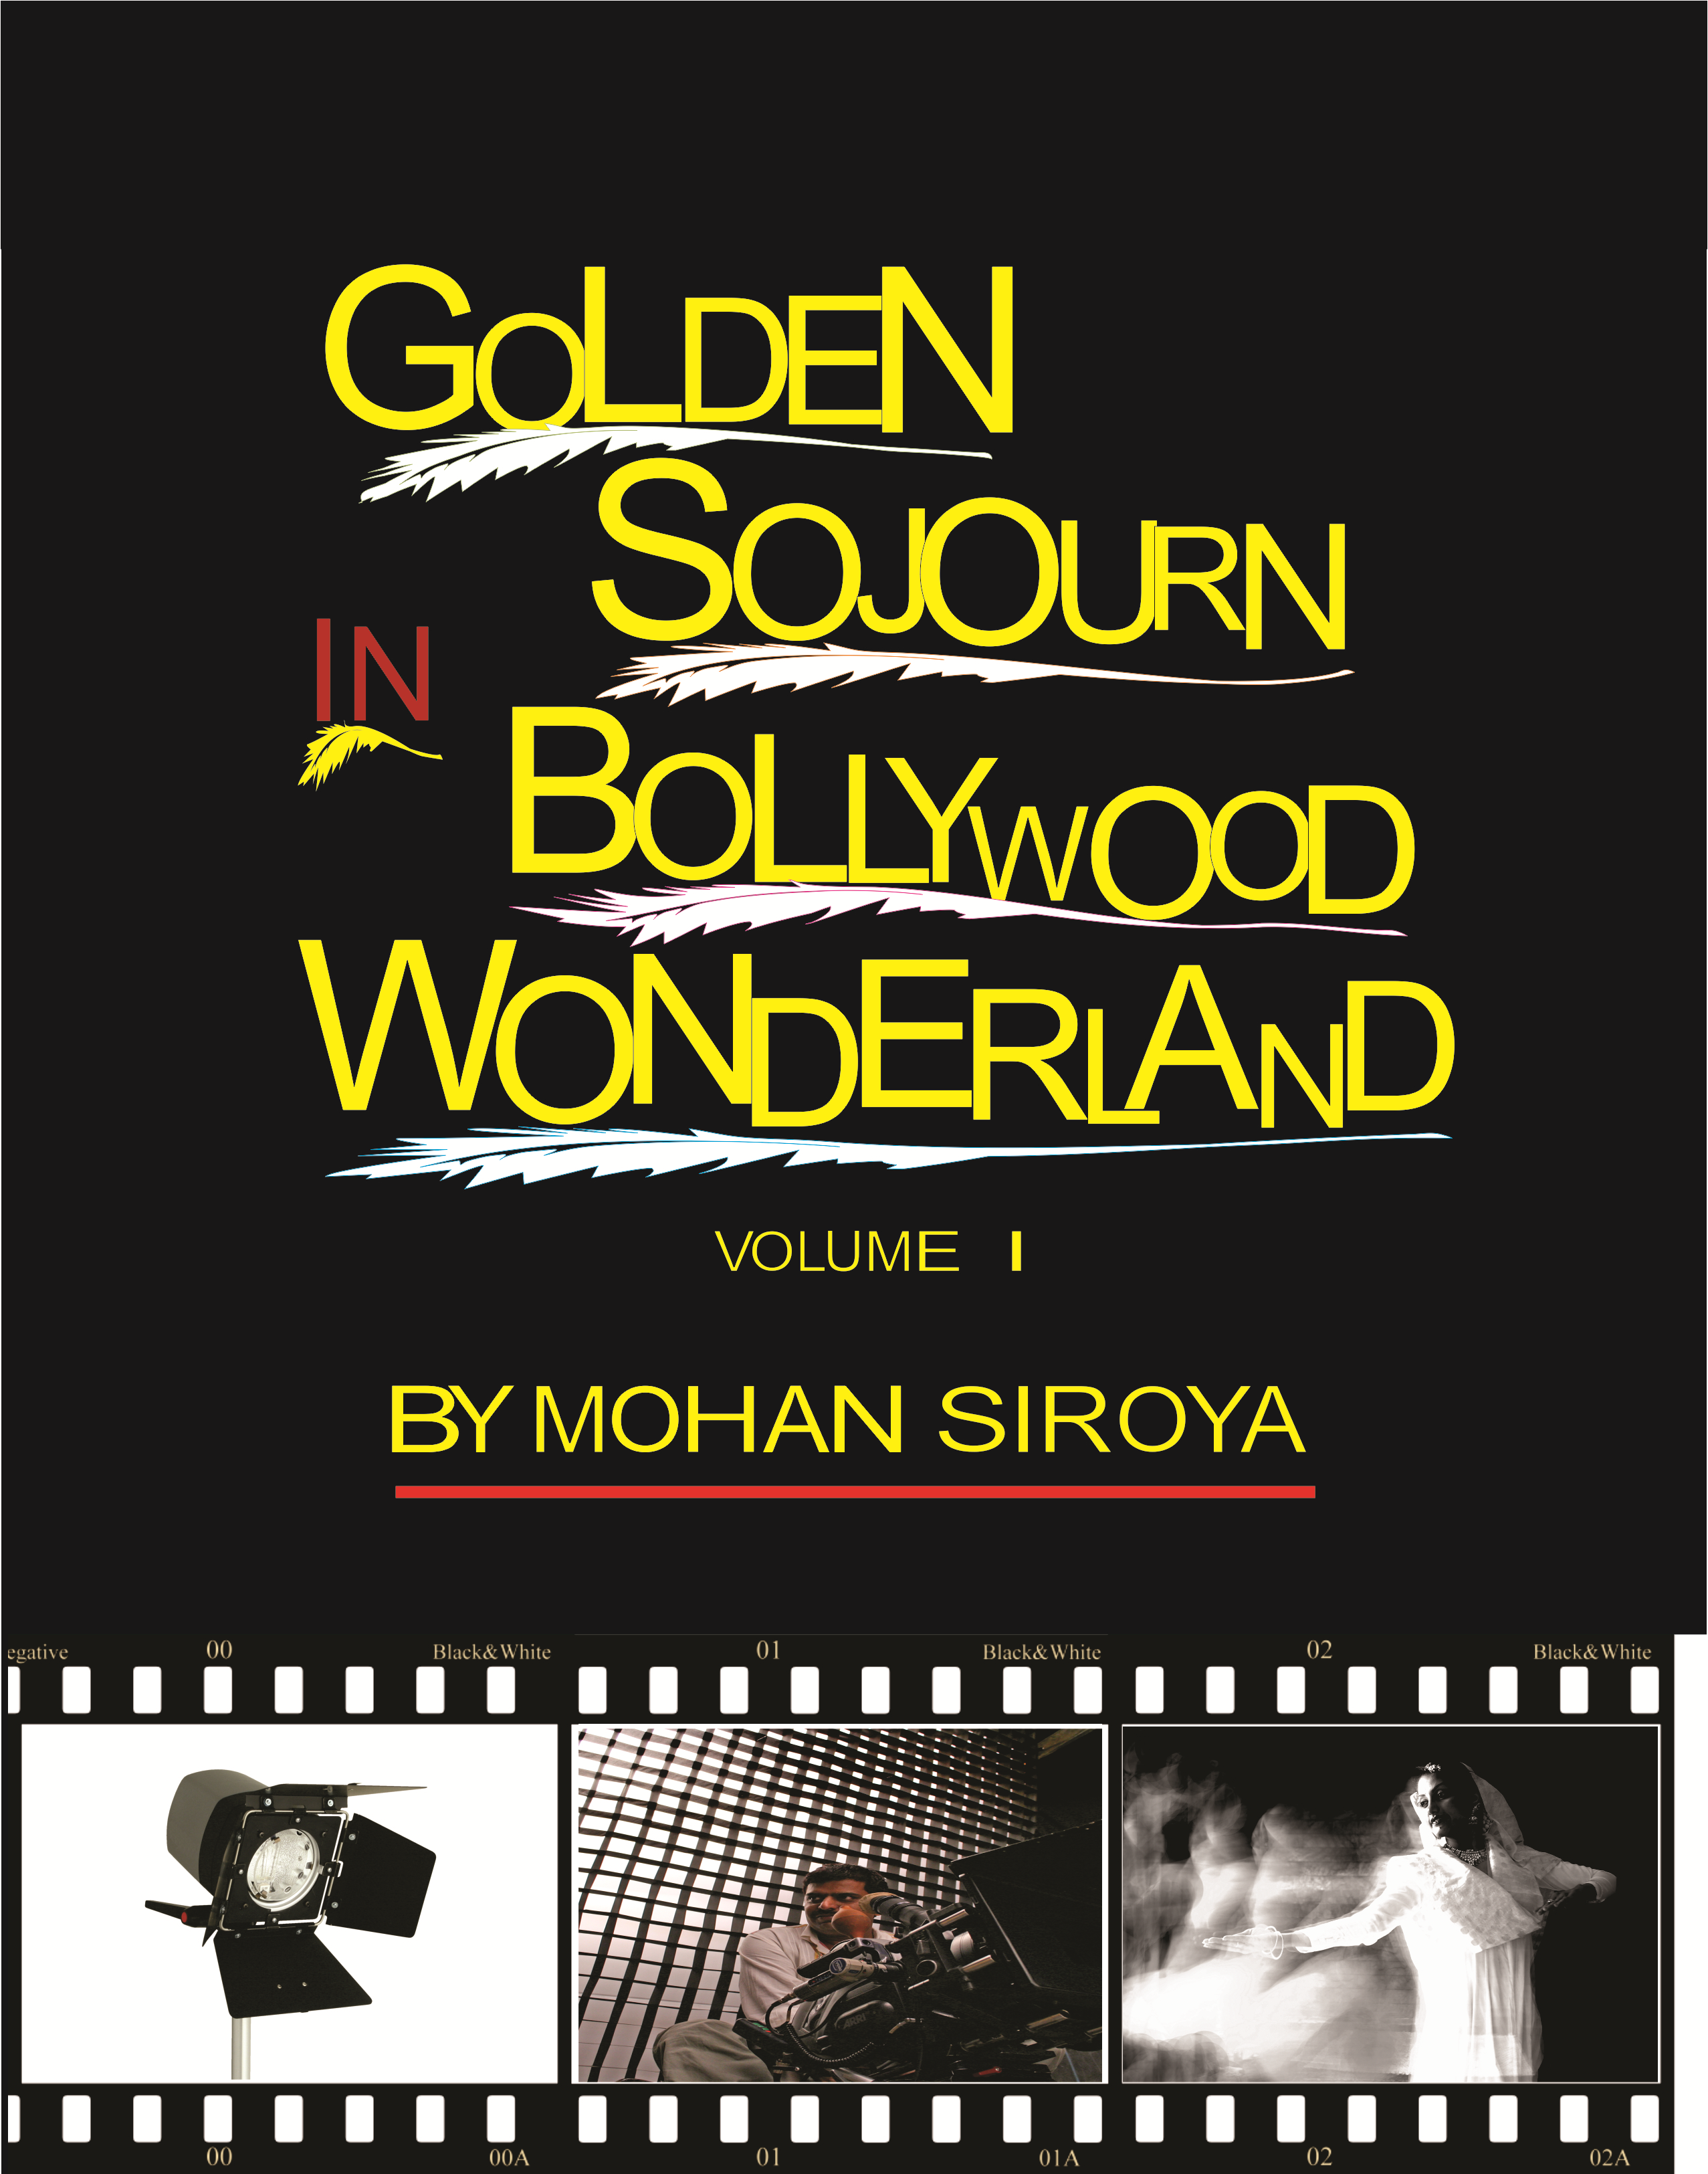 Golden Sojourn in Bollywood Wonderland